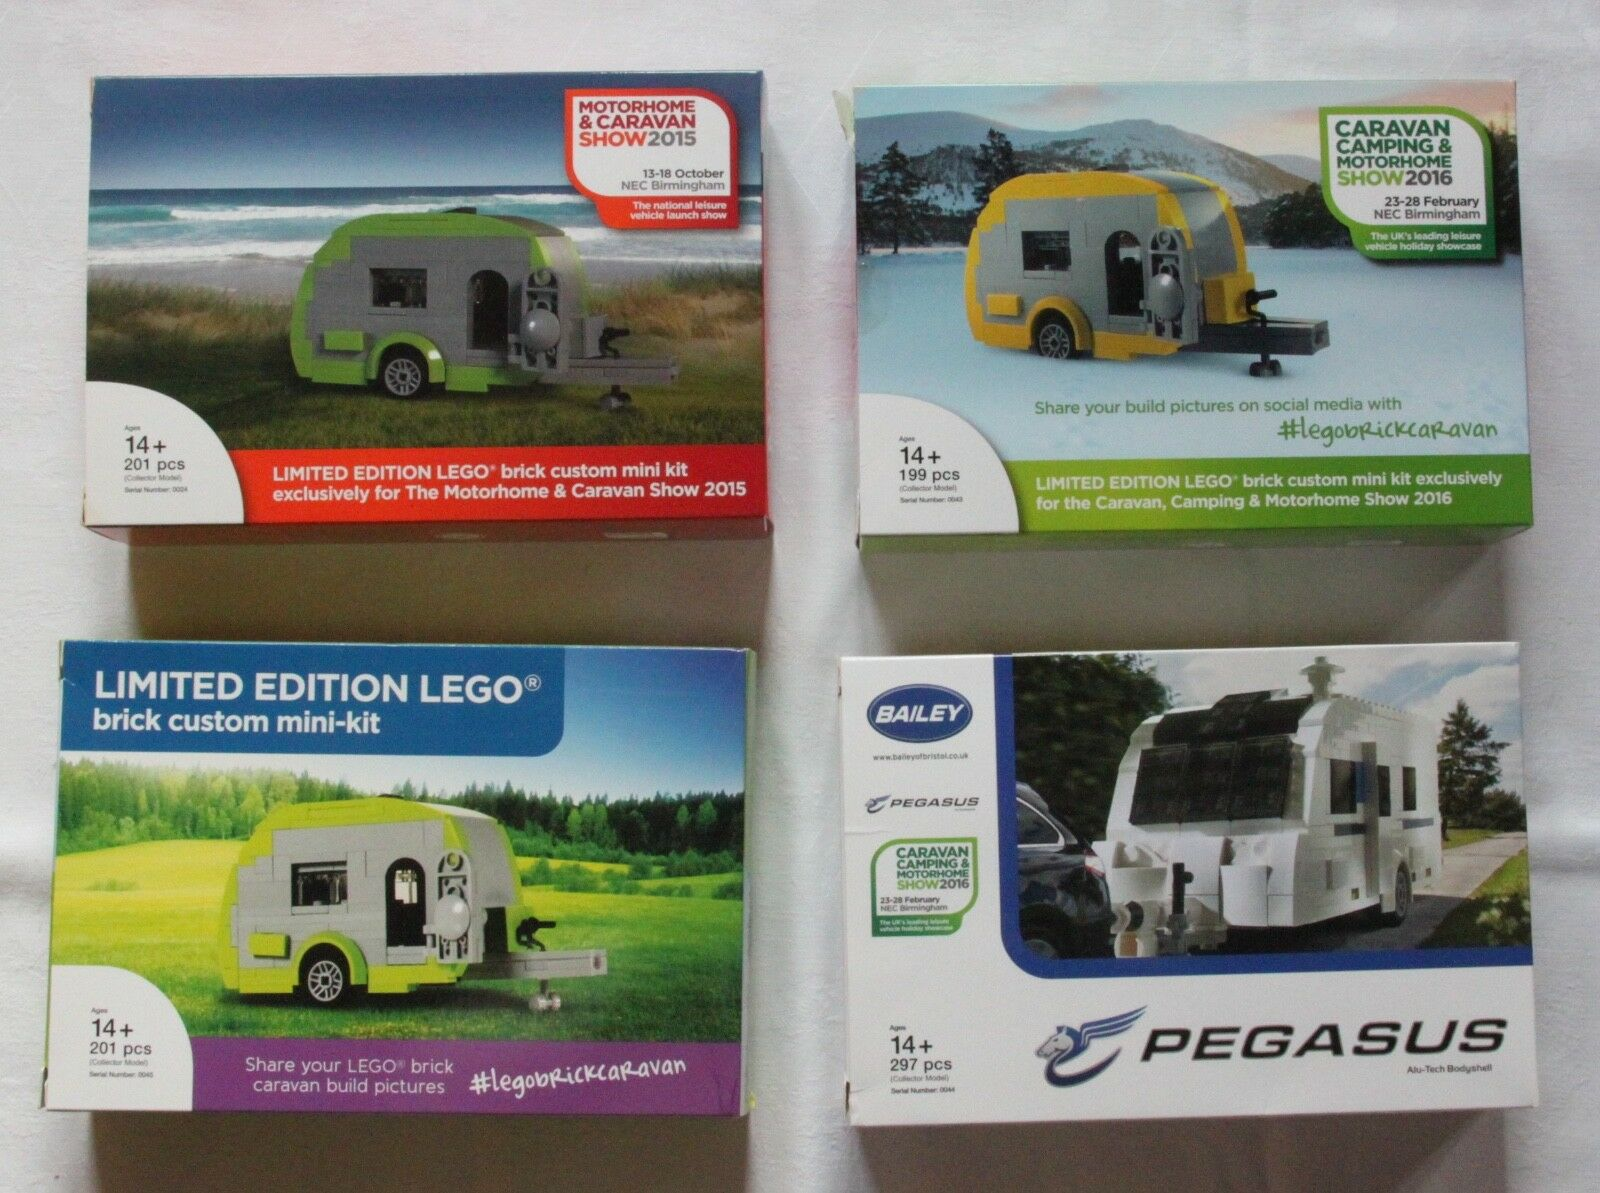 LEGO motorhome & Caravan show 4 MECCANO Certified Professional Limited Edition